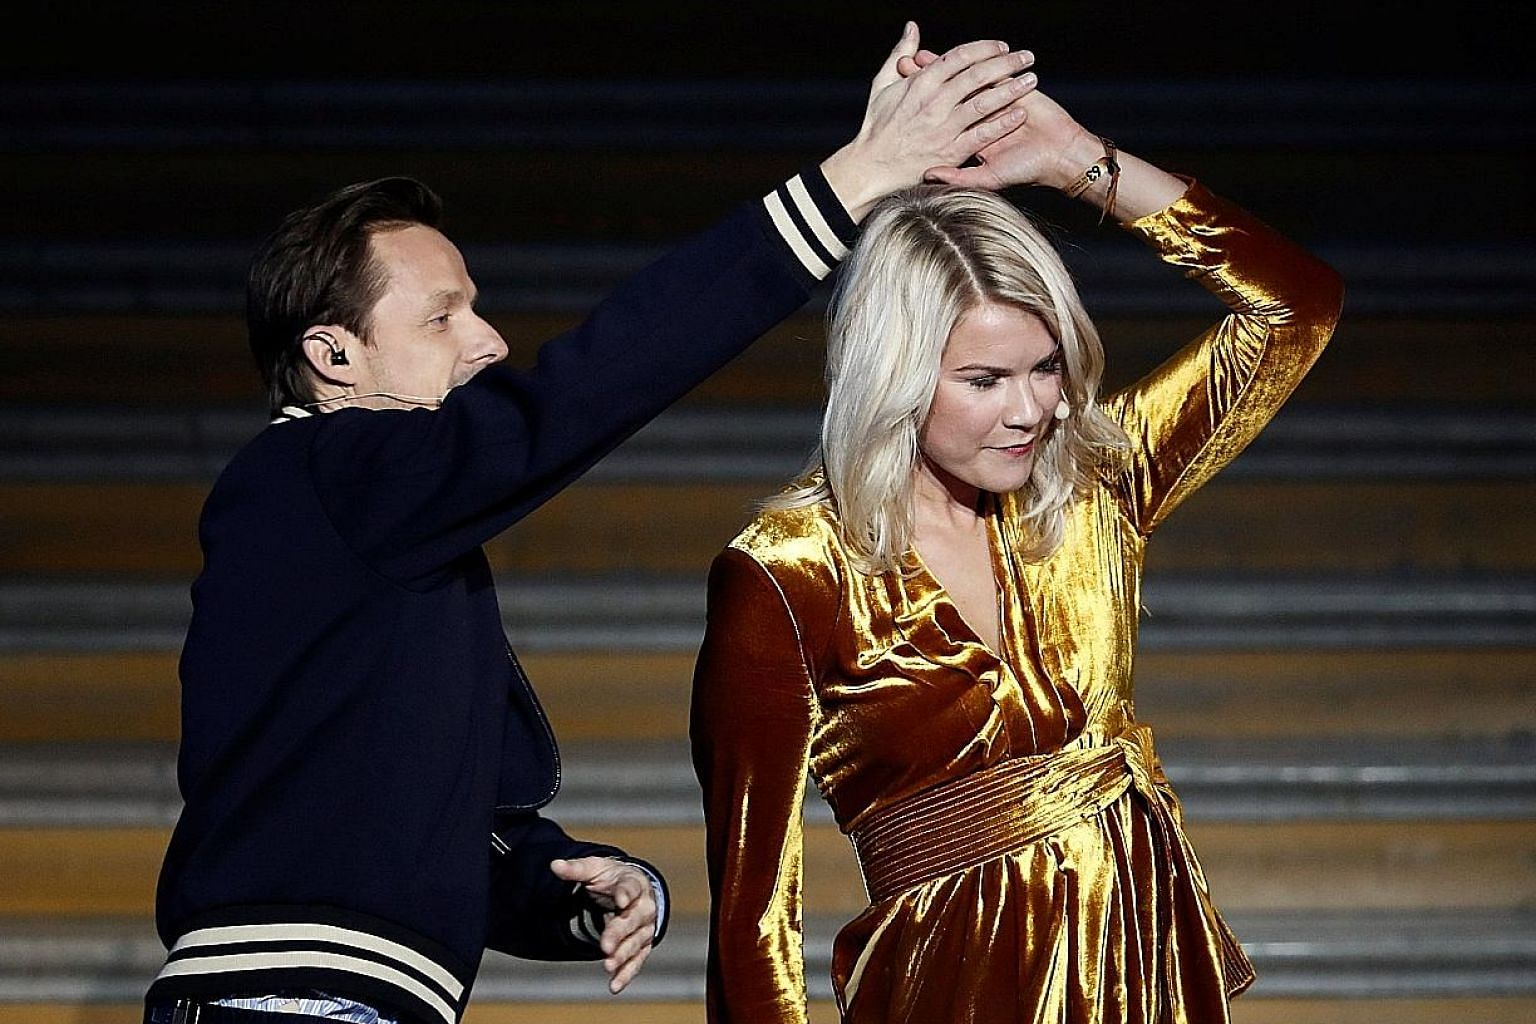 """DJ Martin Solveig was playing music throughout the ceremony, and also danced with Ada Hegerberg to Frank Sinatra. But her answer was """"No"""" when asked if she knew how to """"twerk"""" and he later apologised, saying it had been """"a joke""""."""